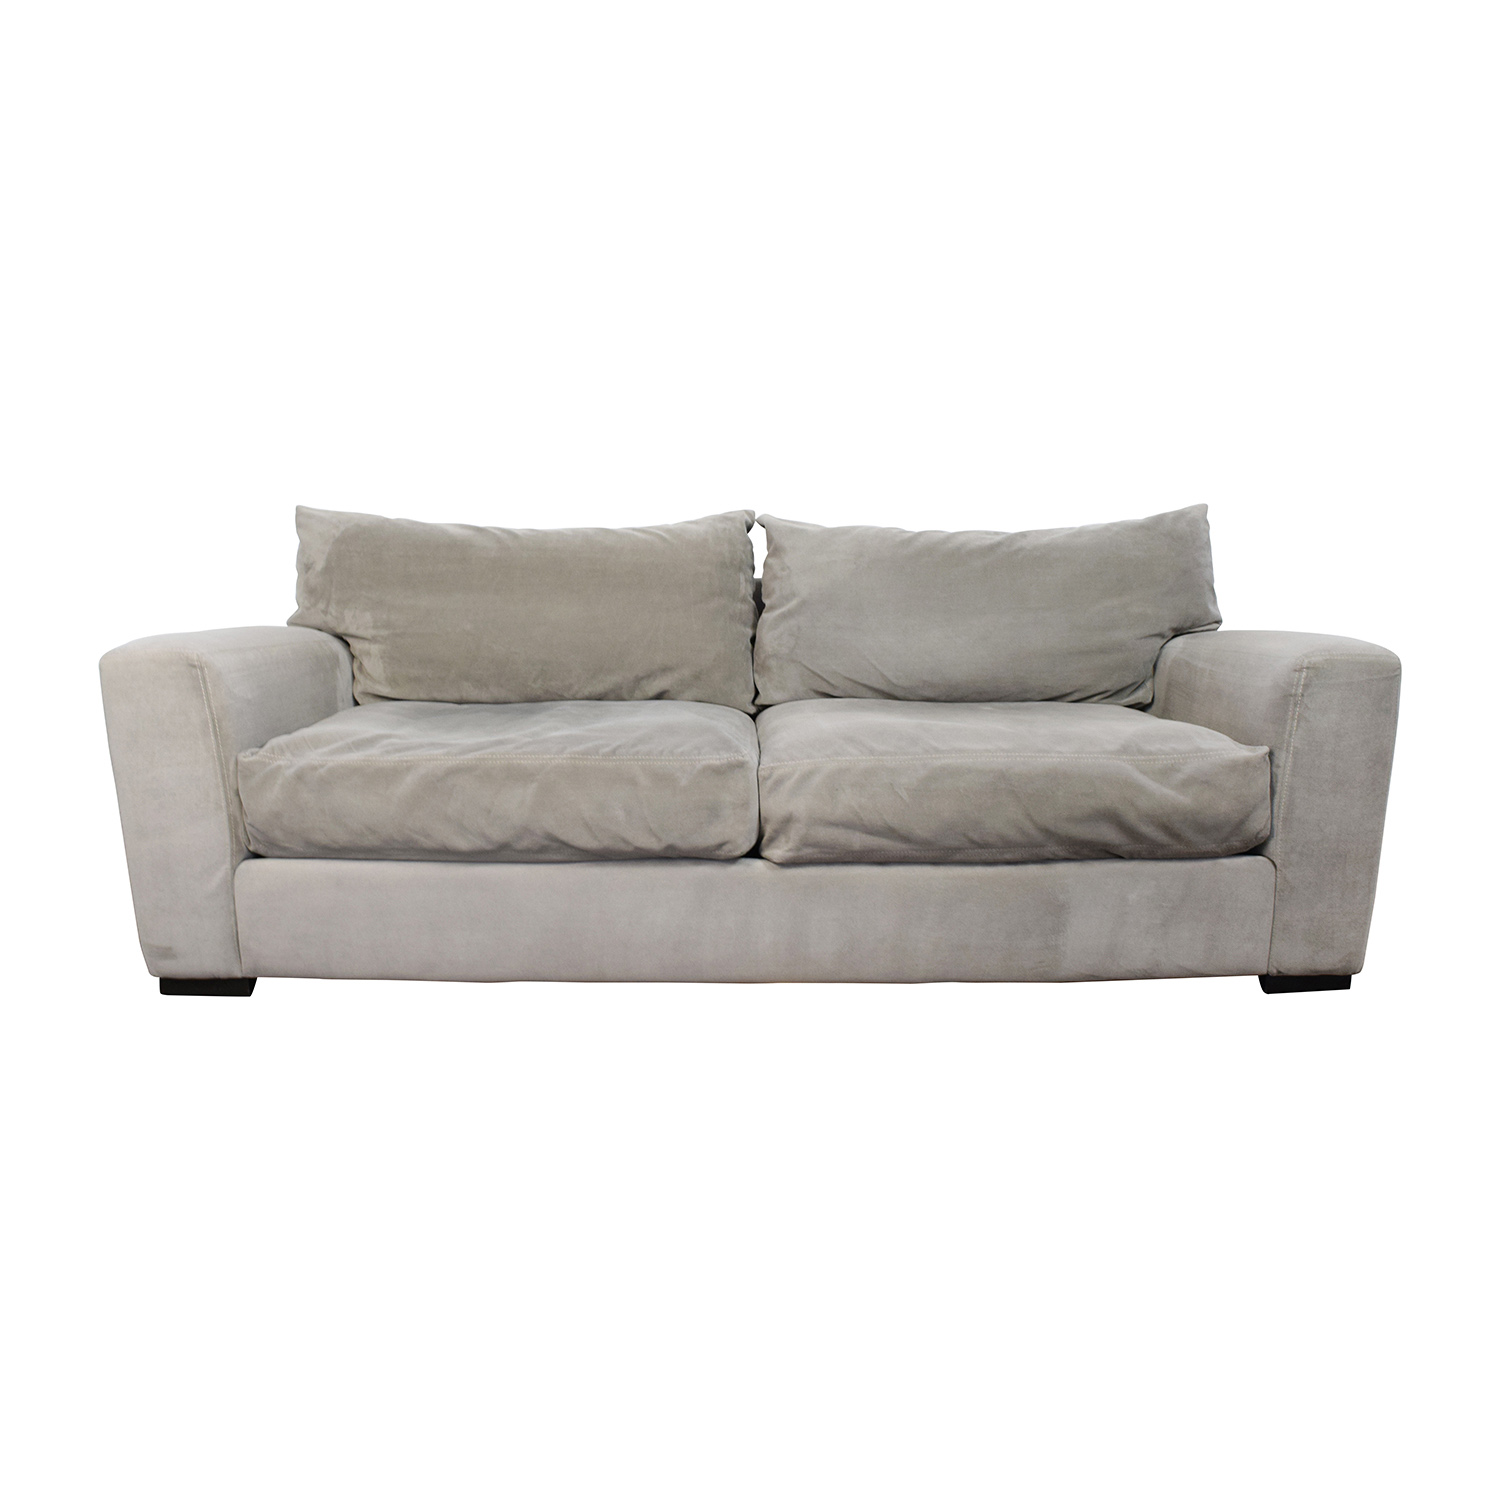 Raymour and Flanigan Raymour & Flanigan Carlin Grey Microfiber Sofa used